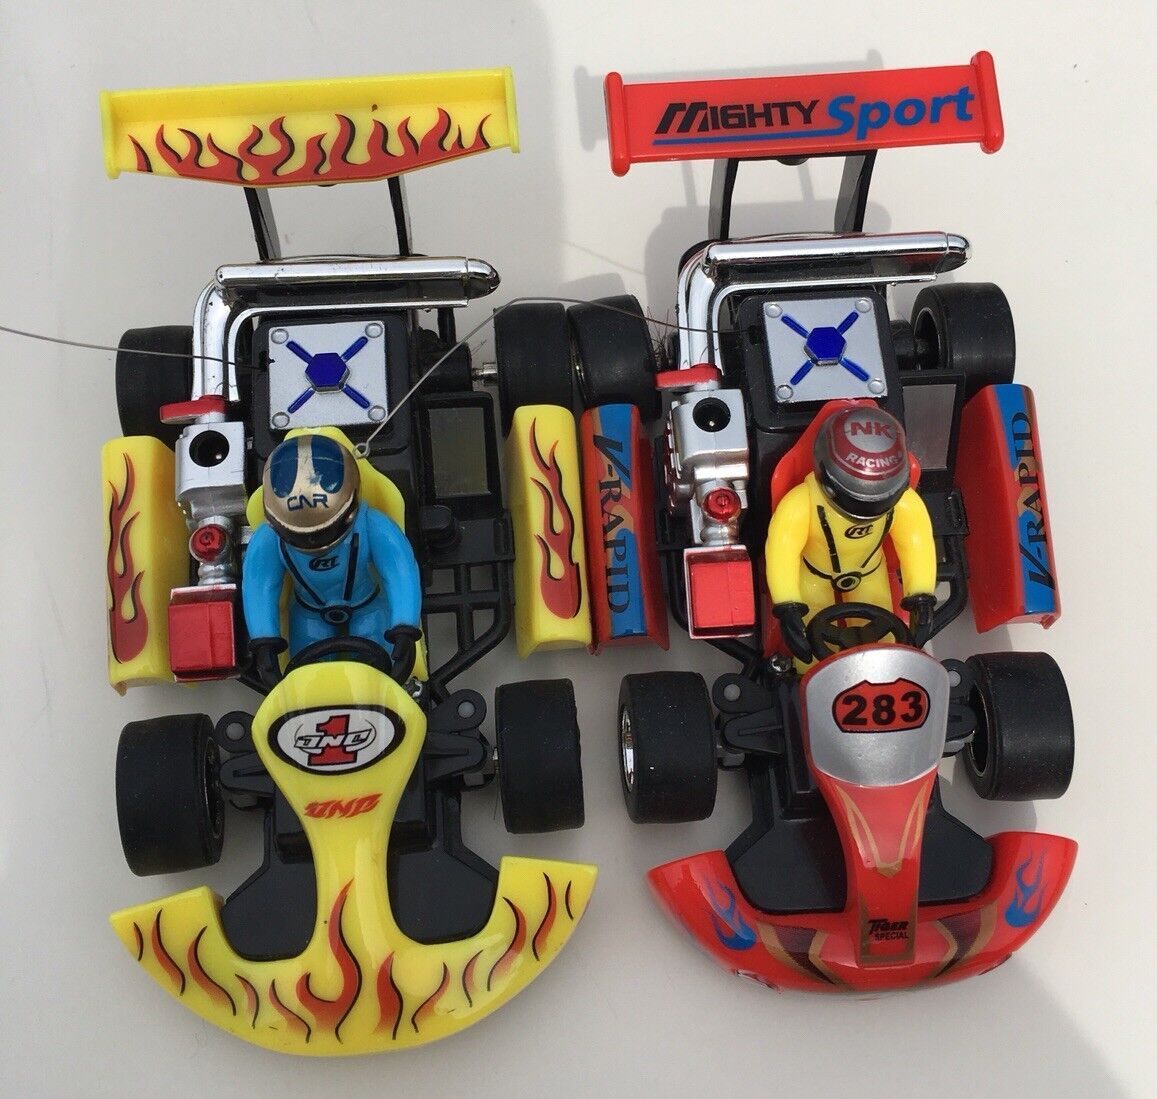 2- 1 23 Scale  Rechargeable Remote Controlled RC Racing Go-Karts  vendita economica